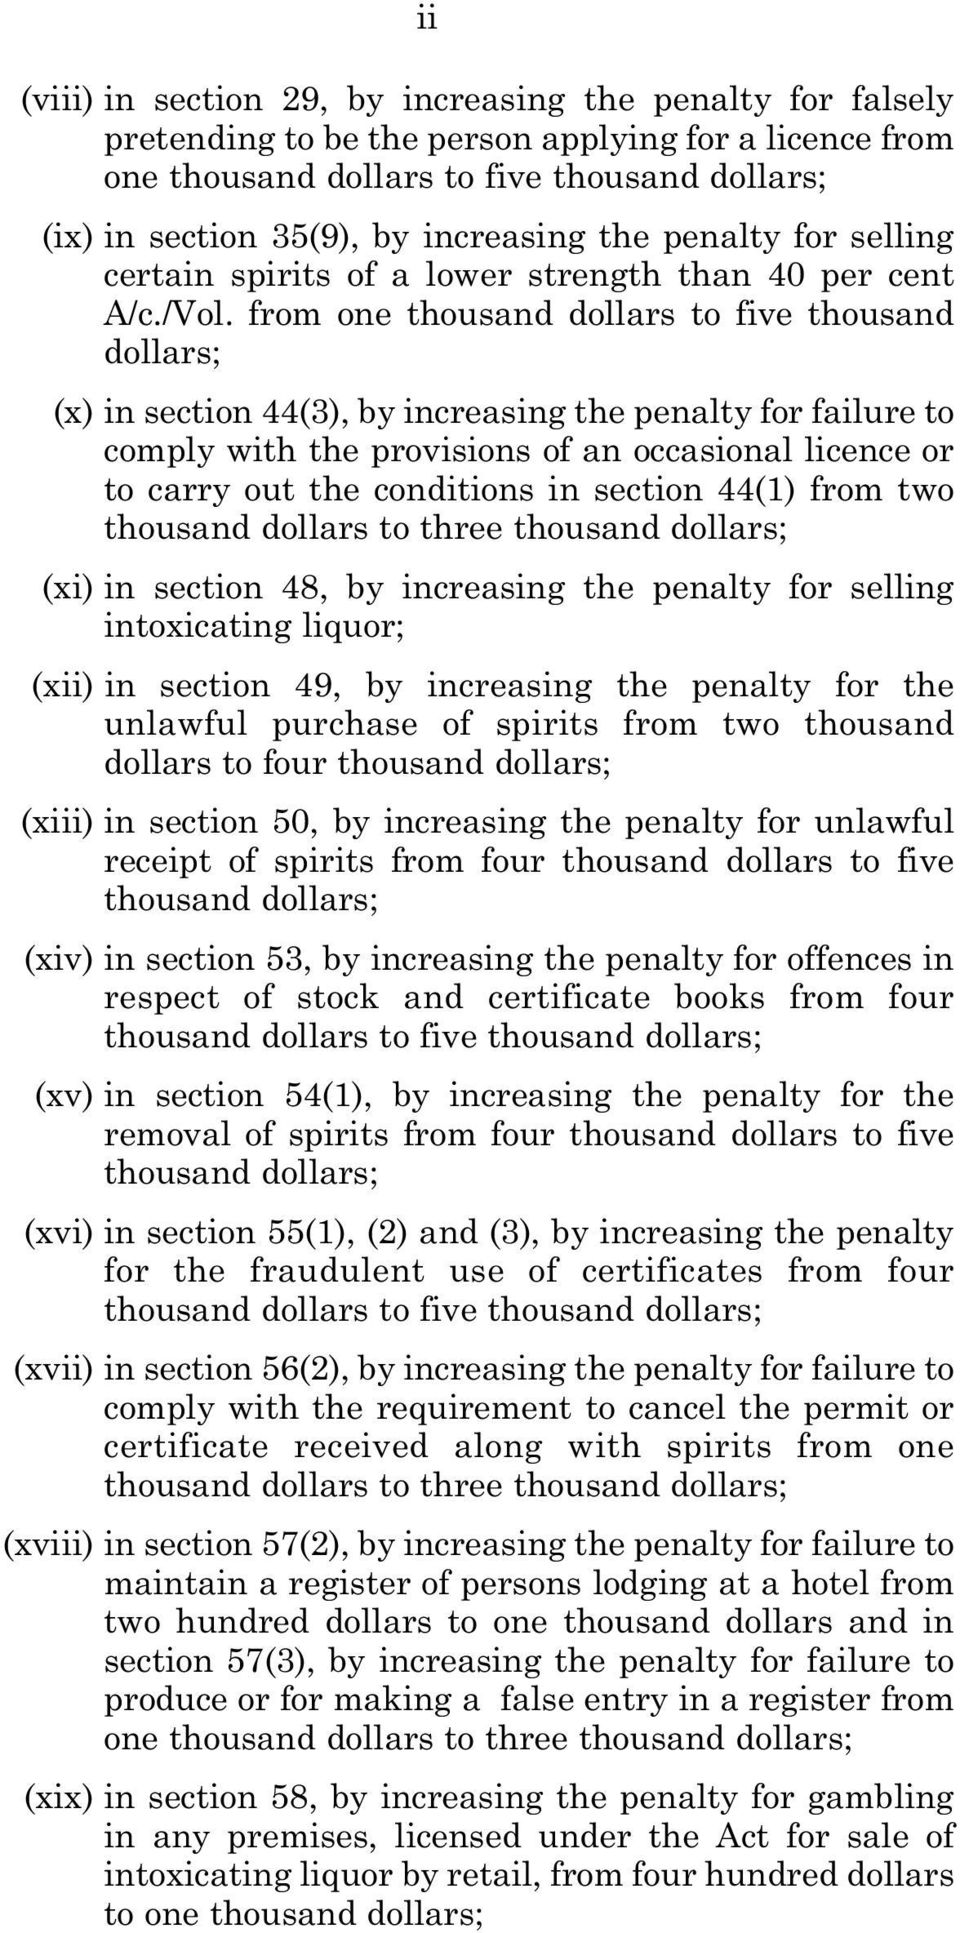 from one thousand dollars to five thousand dollars; (x) in section 44(3), by increasing the penalty for failure to comply with the provisions of an occasional licence or to carry out the conditions